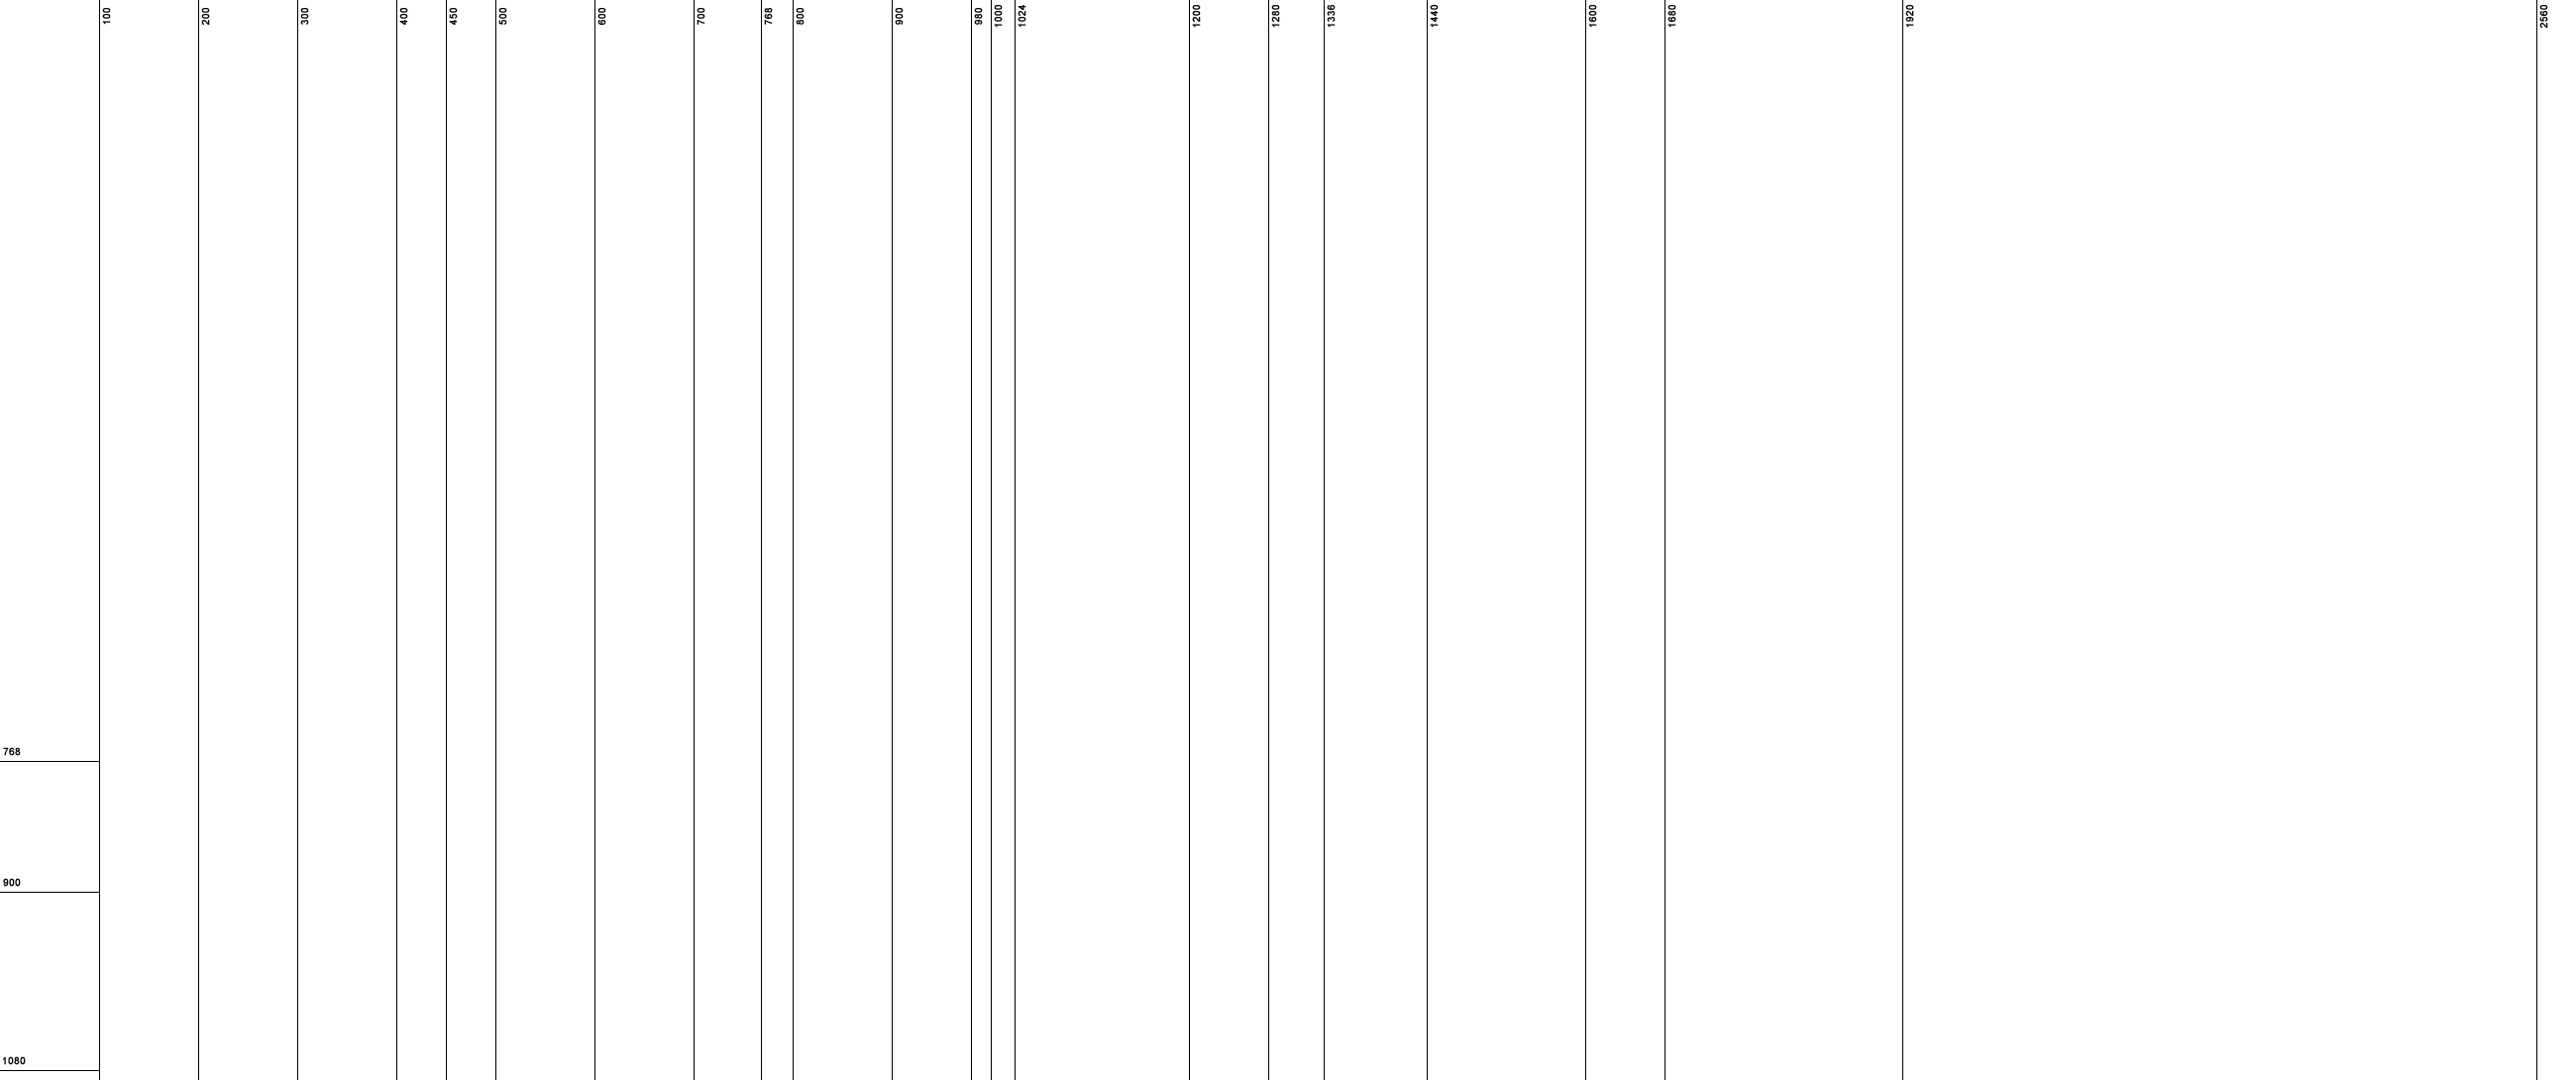 Overlay png. Measuringstick for testing css